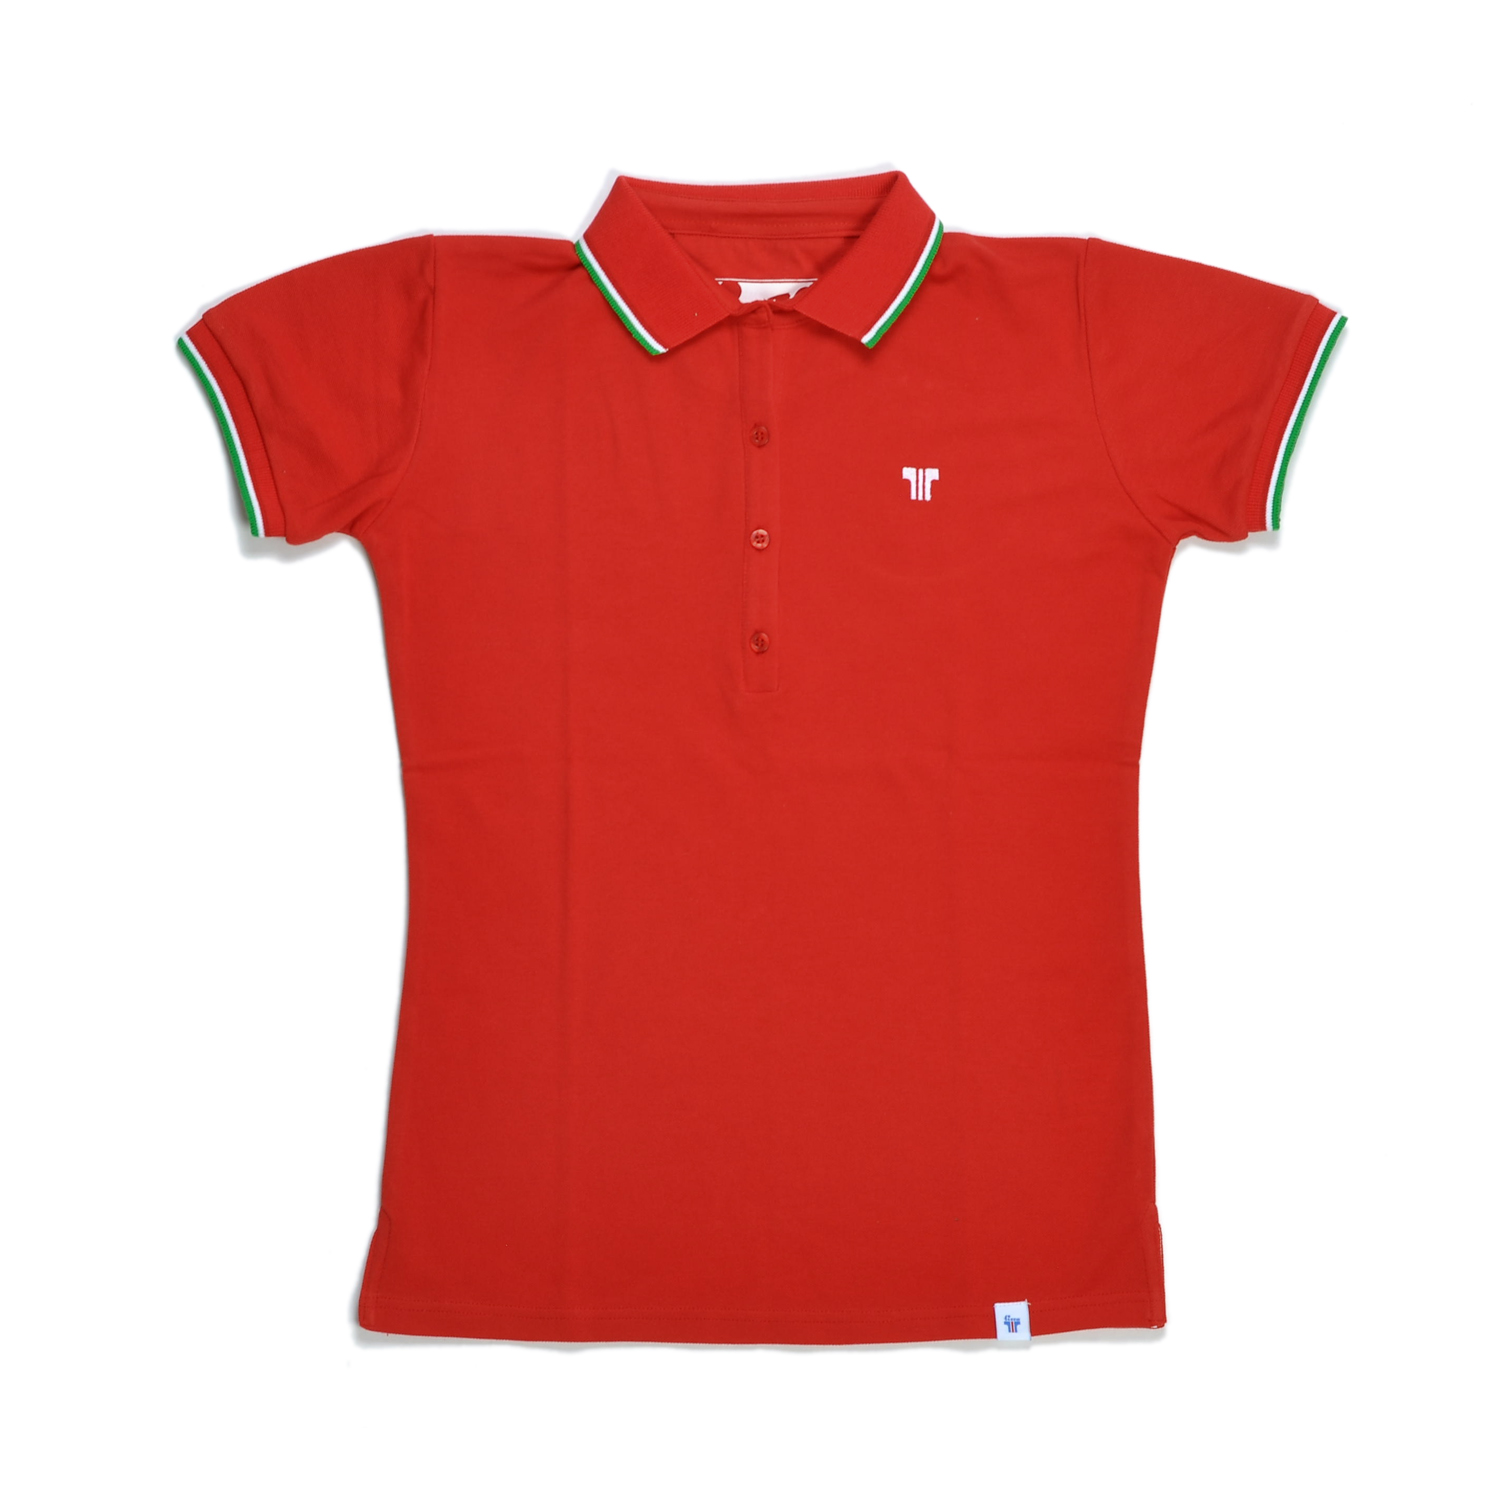 Tisza shoes - Women tennis shirt  - Red-olympiad